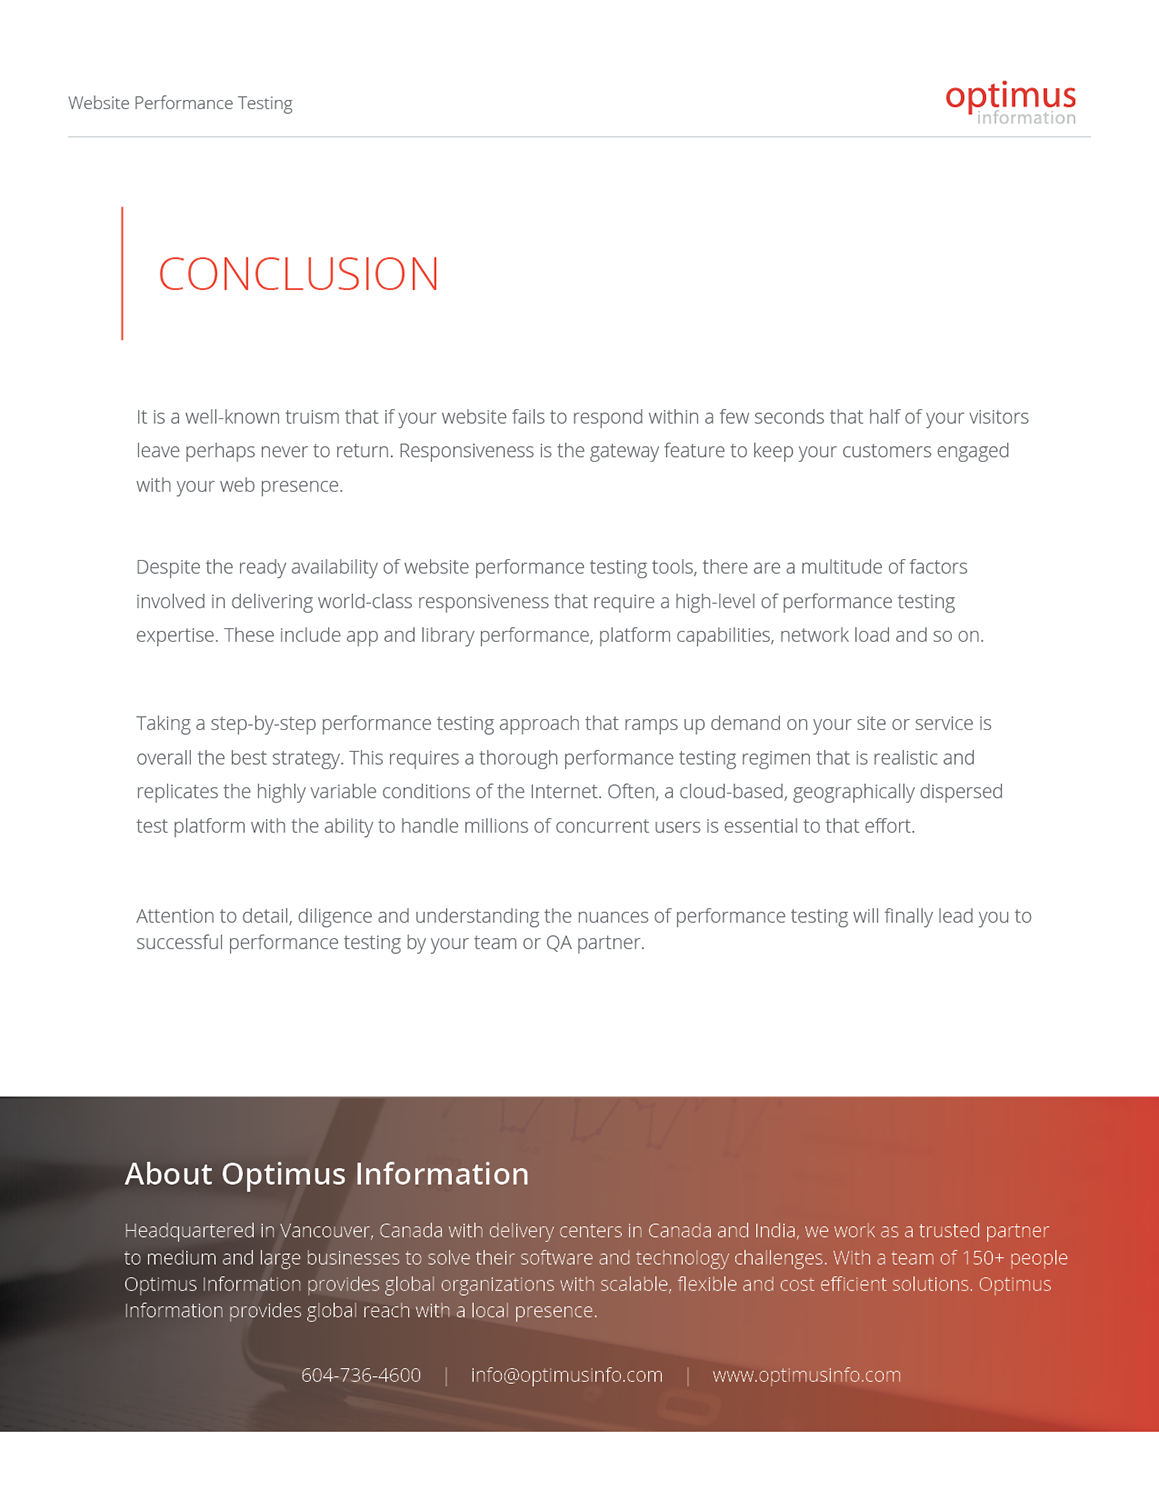 Modern, Professional, Digital Brochure Design for a Company by